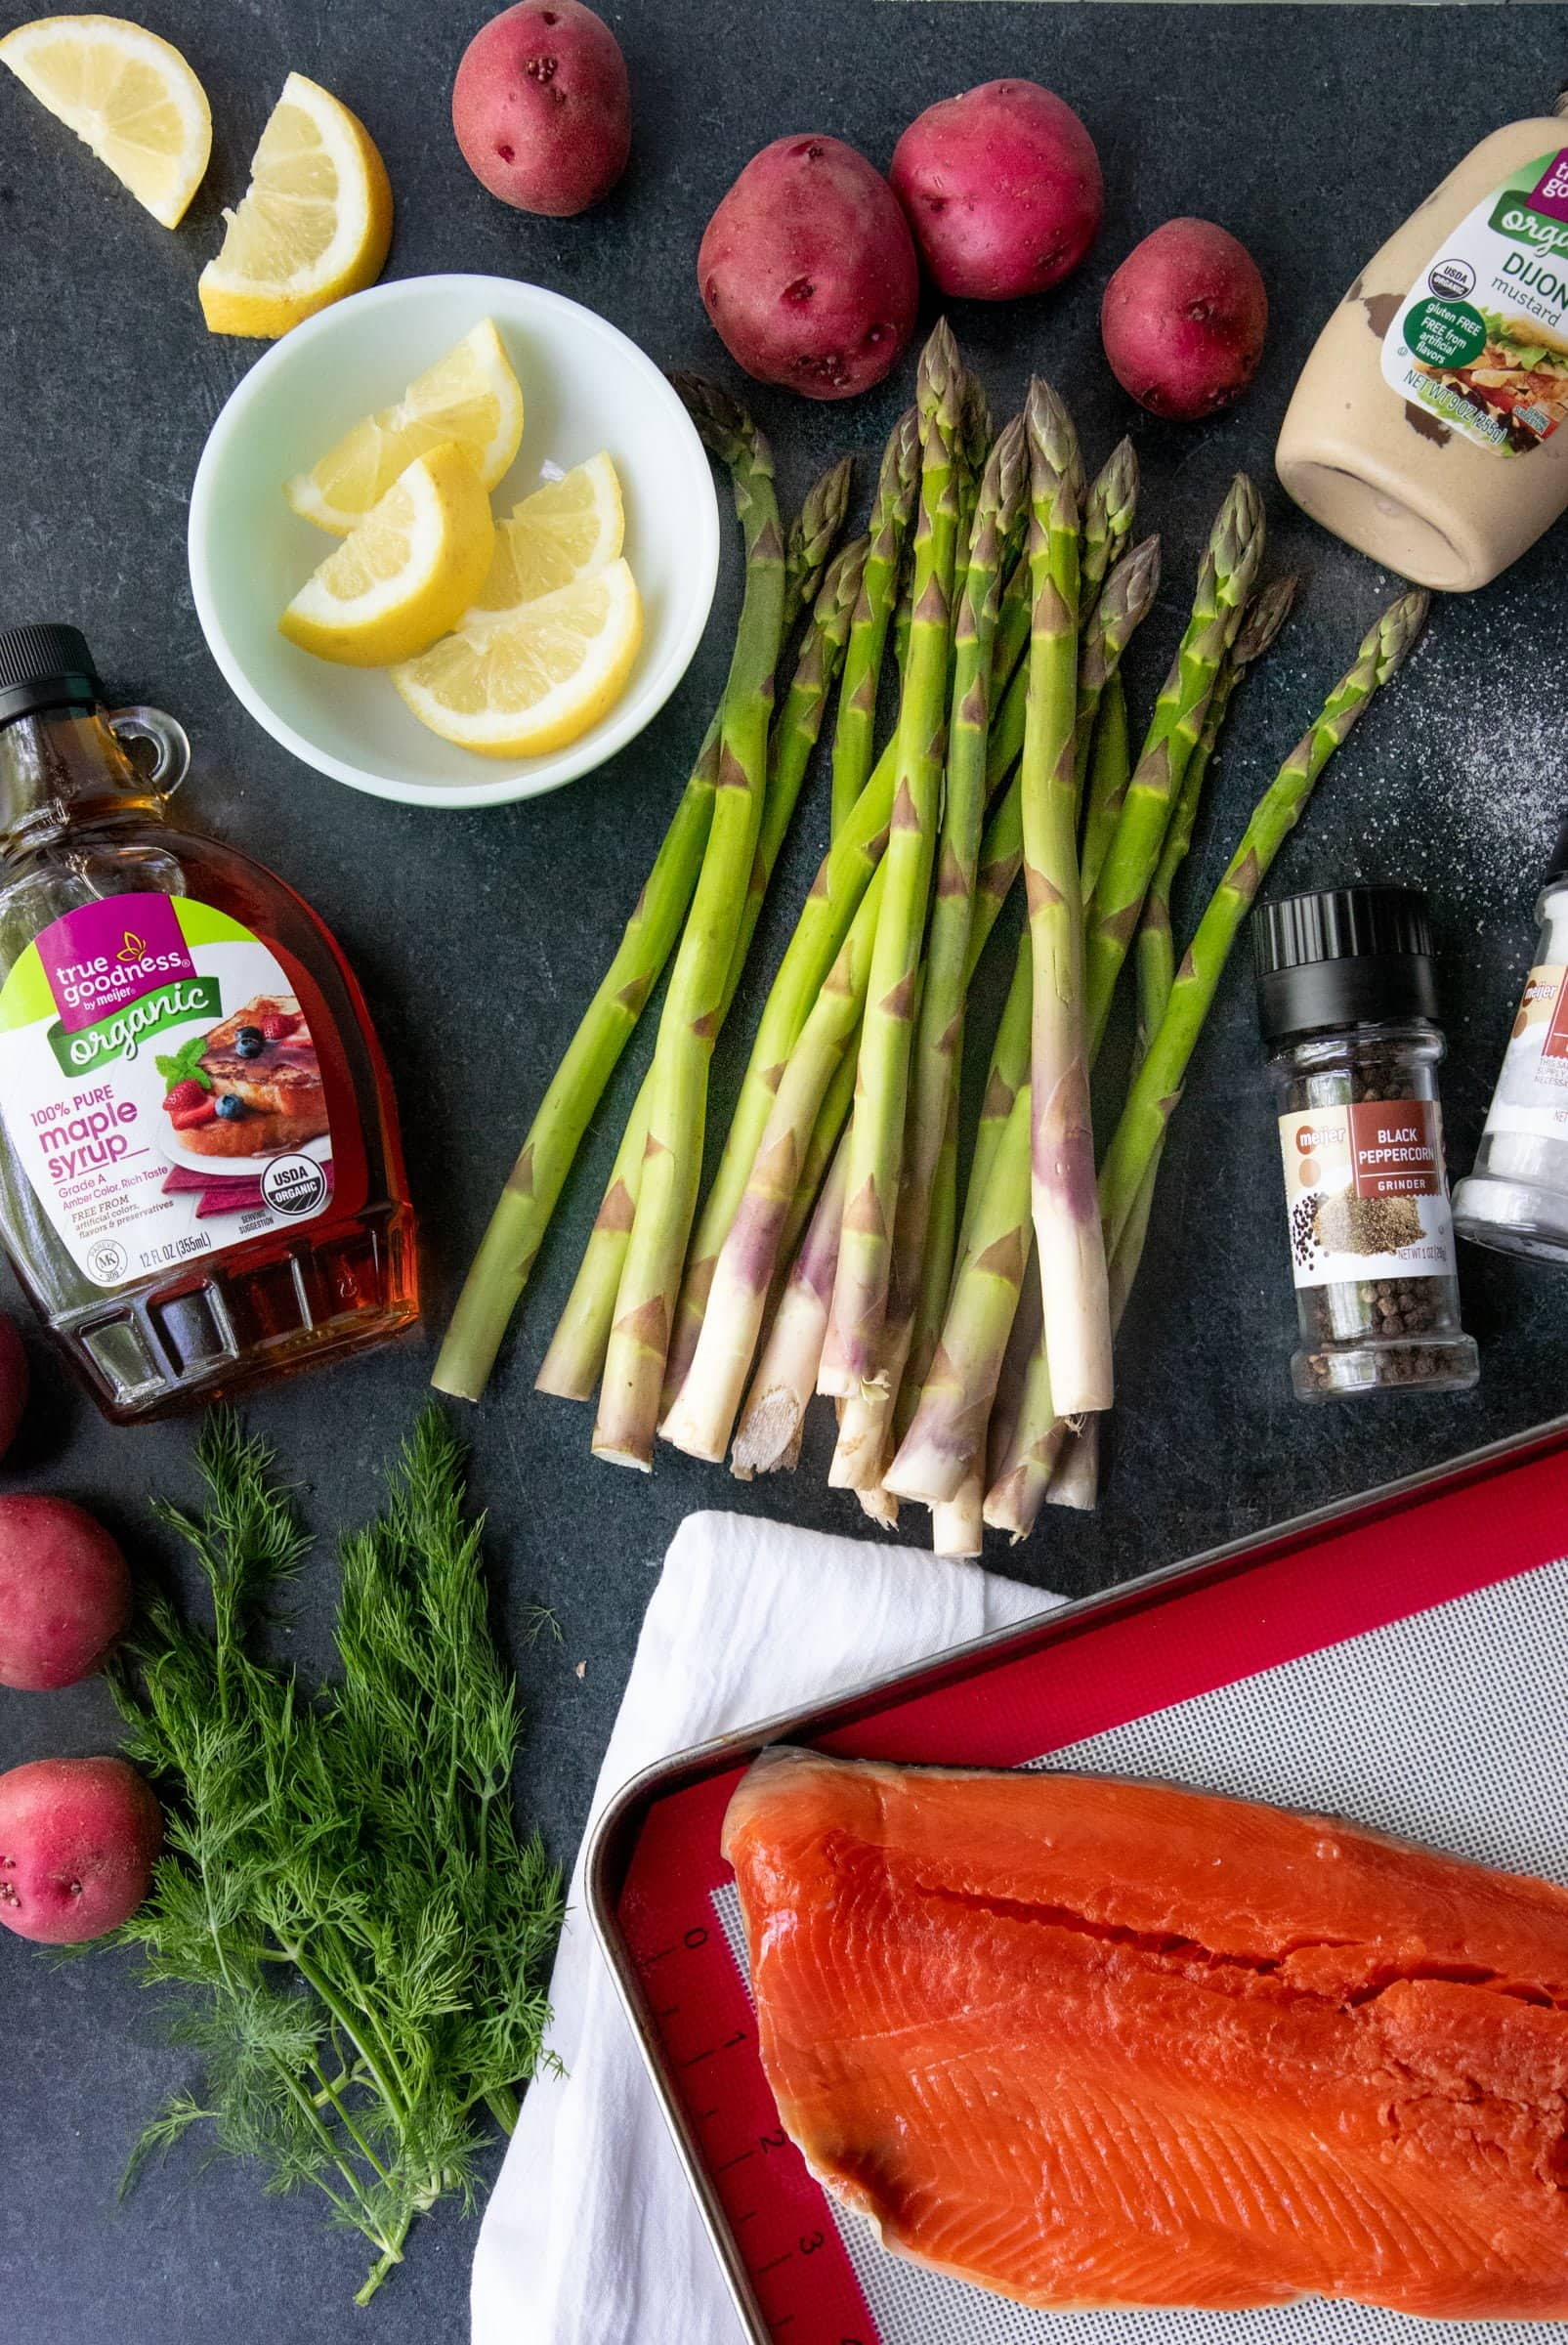 Ingredients for Mustard Maple Glazed Salmon and Asparagus on a gray background - salmon, asparagus, potatoes, maple syrup, dijon mustard, lemon slices, dill, salt, and pepper.